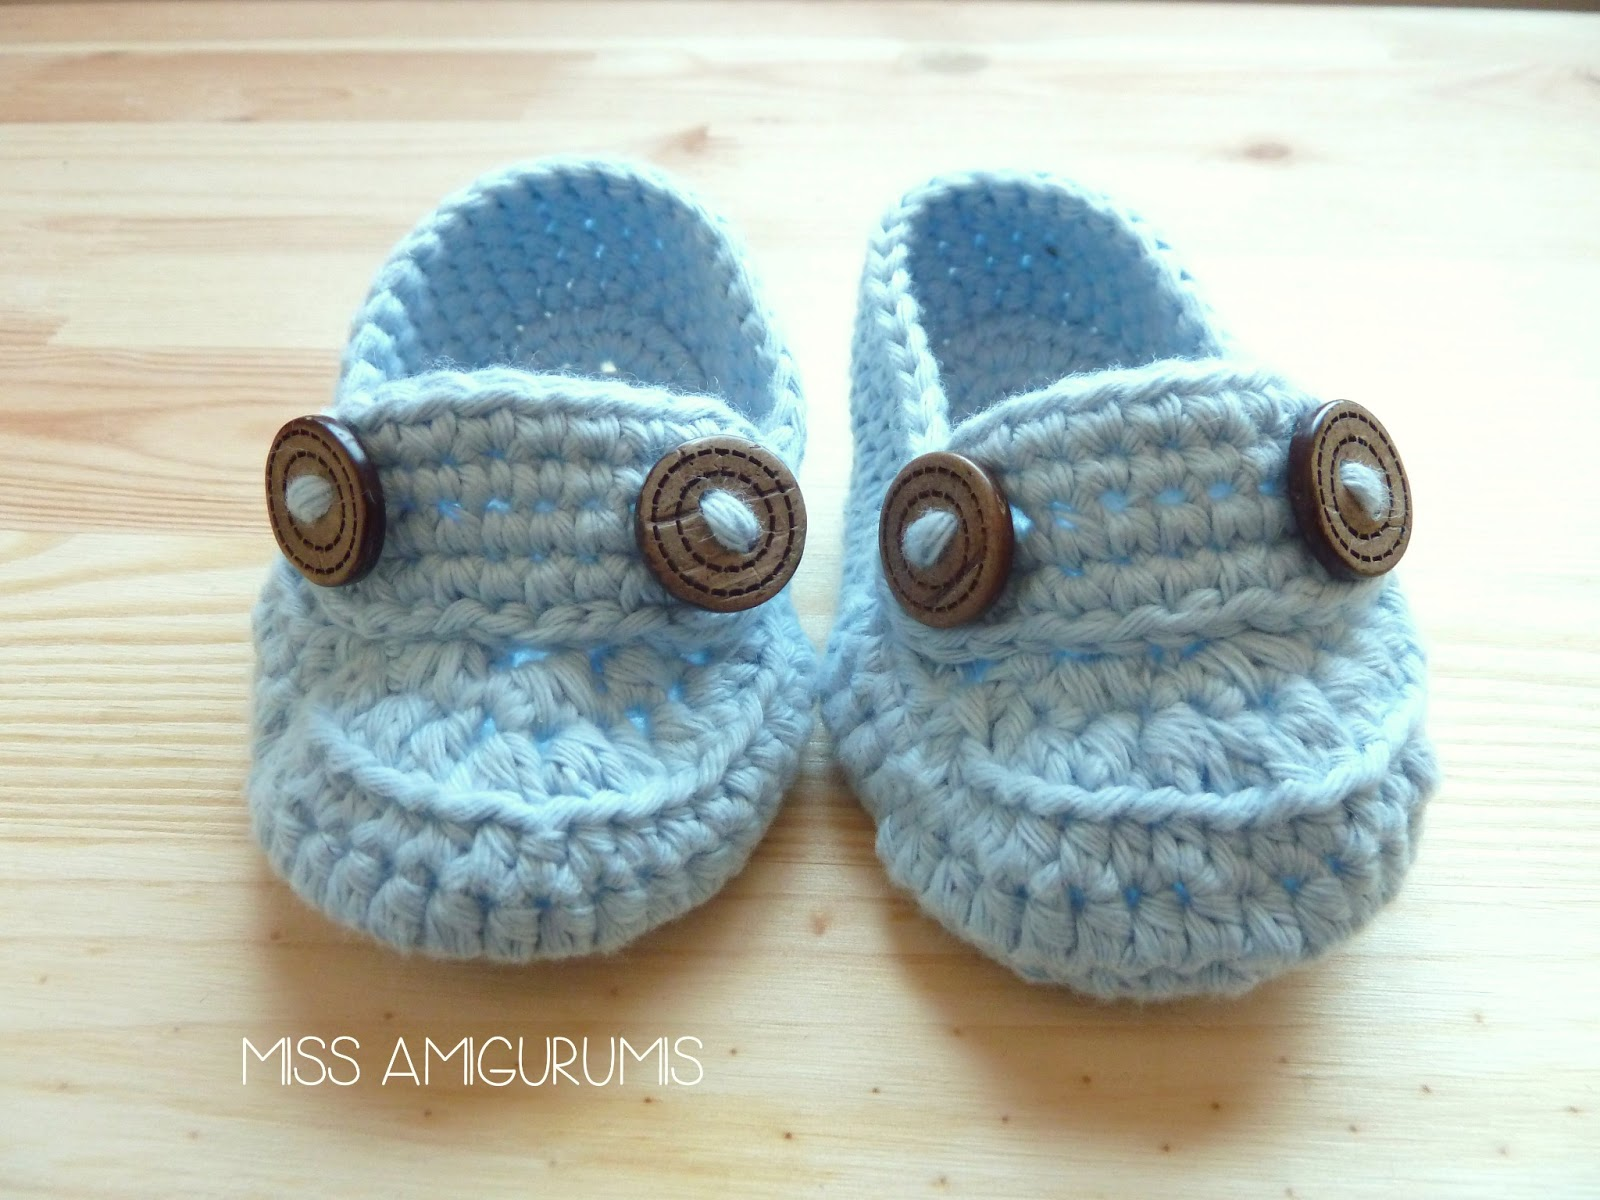 Crochet Tutorial Zapatitos : Miss Amigurumis: Zapatitos de crochet para bebE